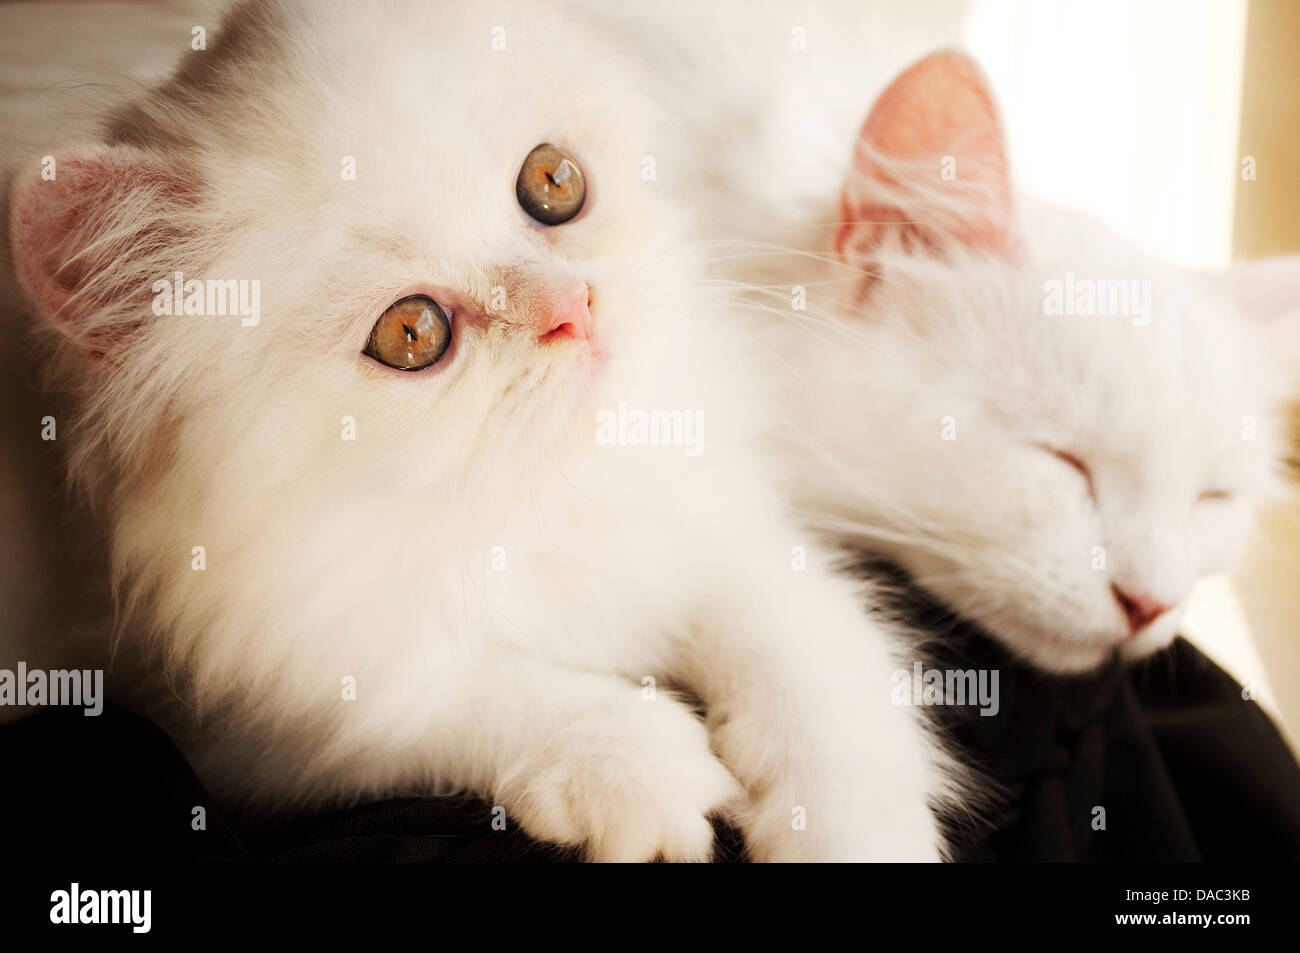 Cats - Stock Image